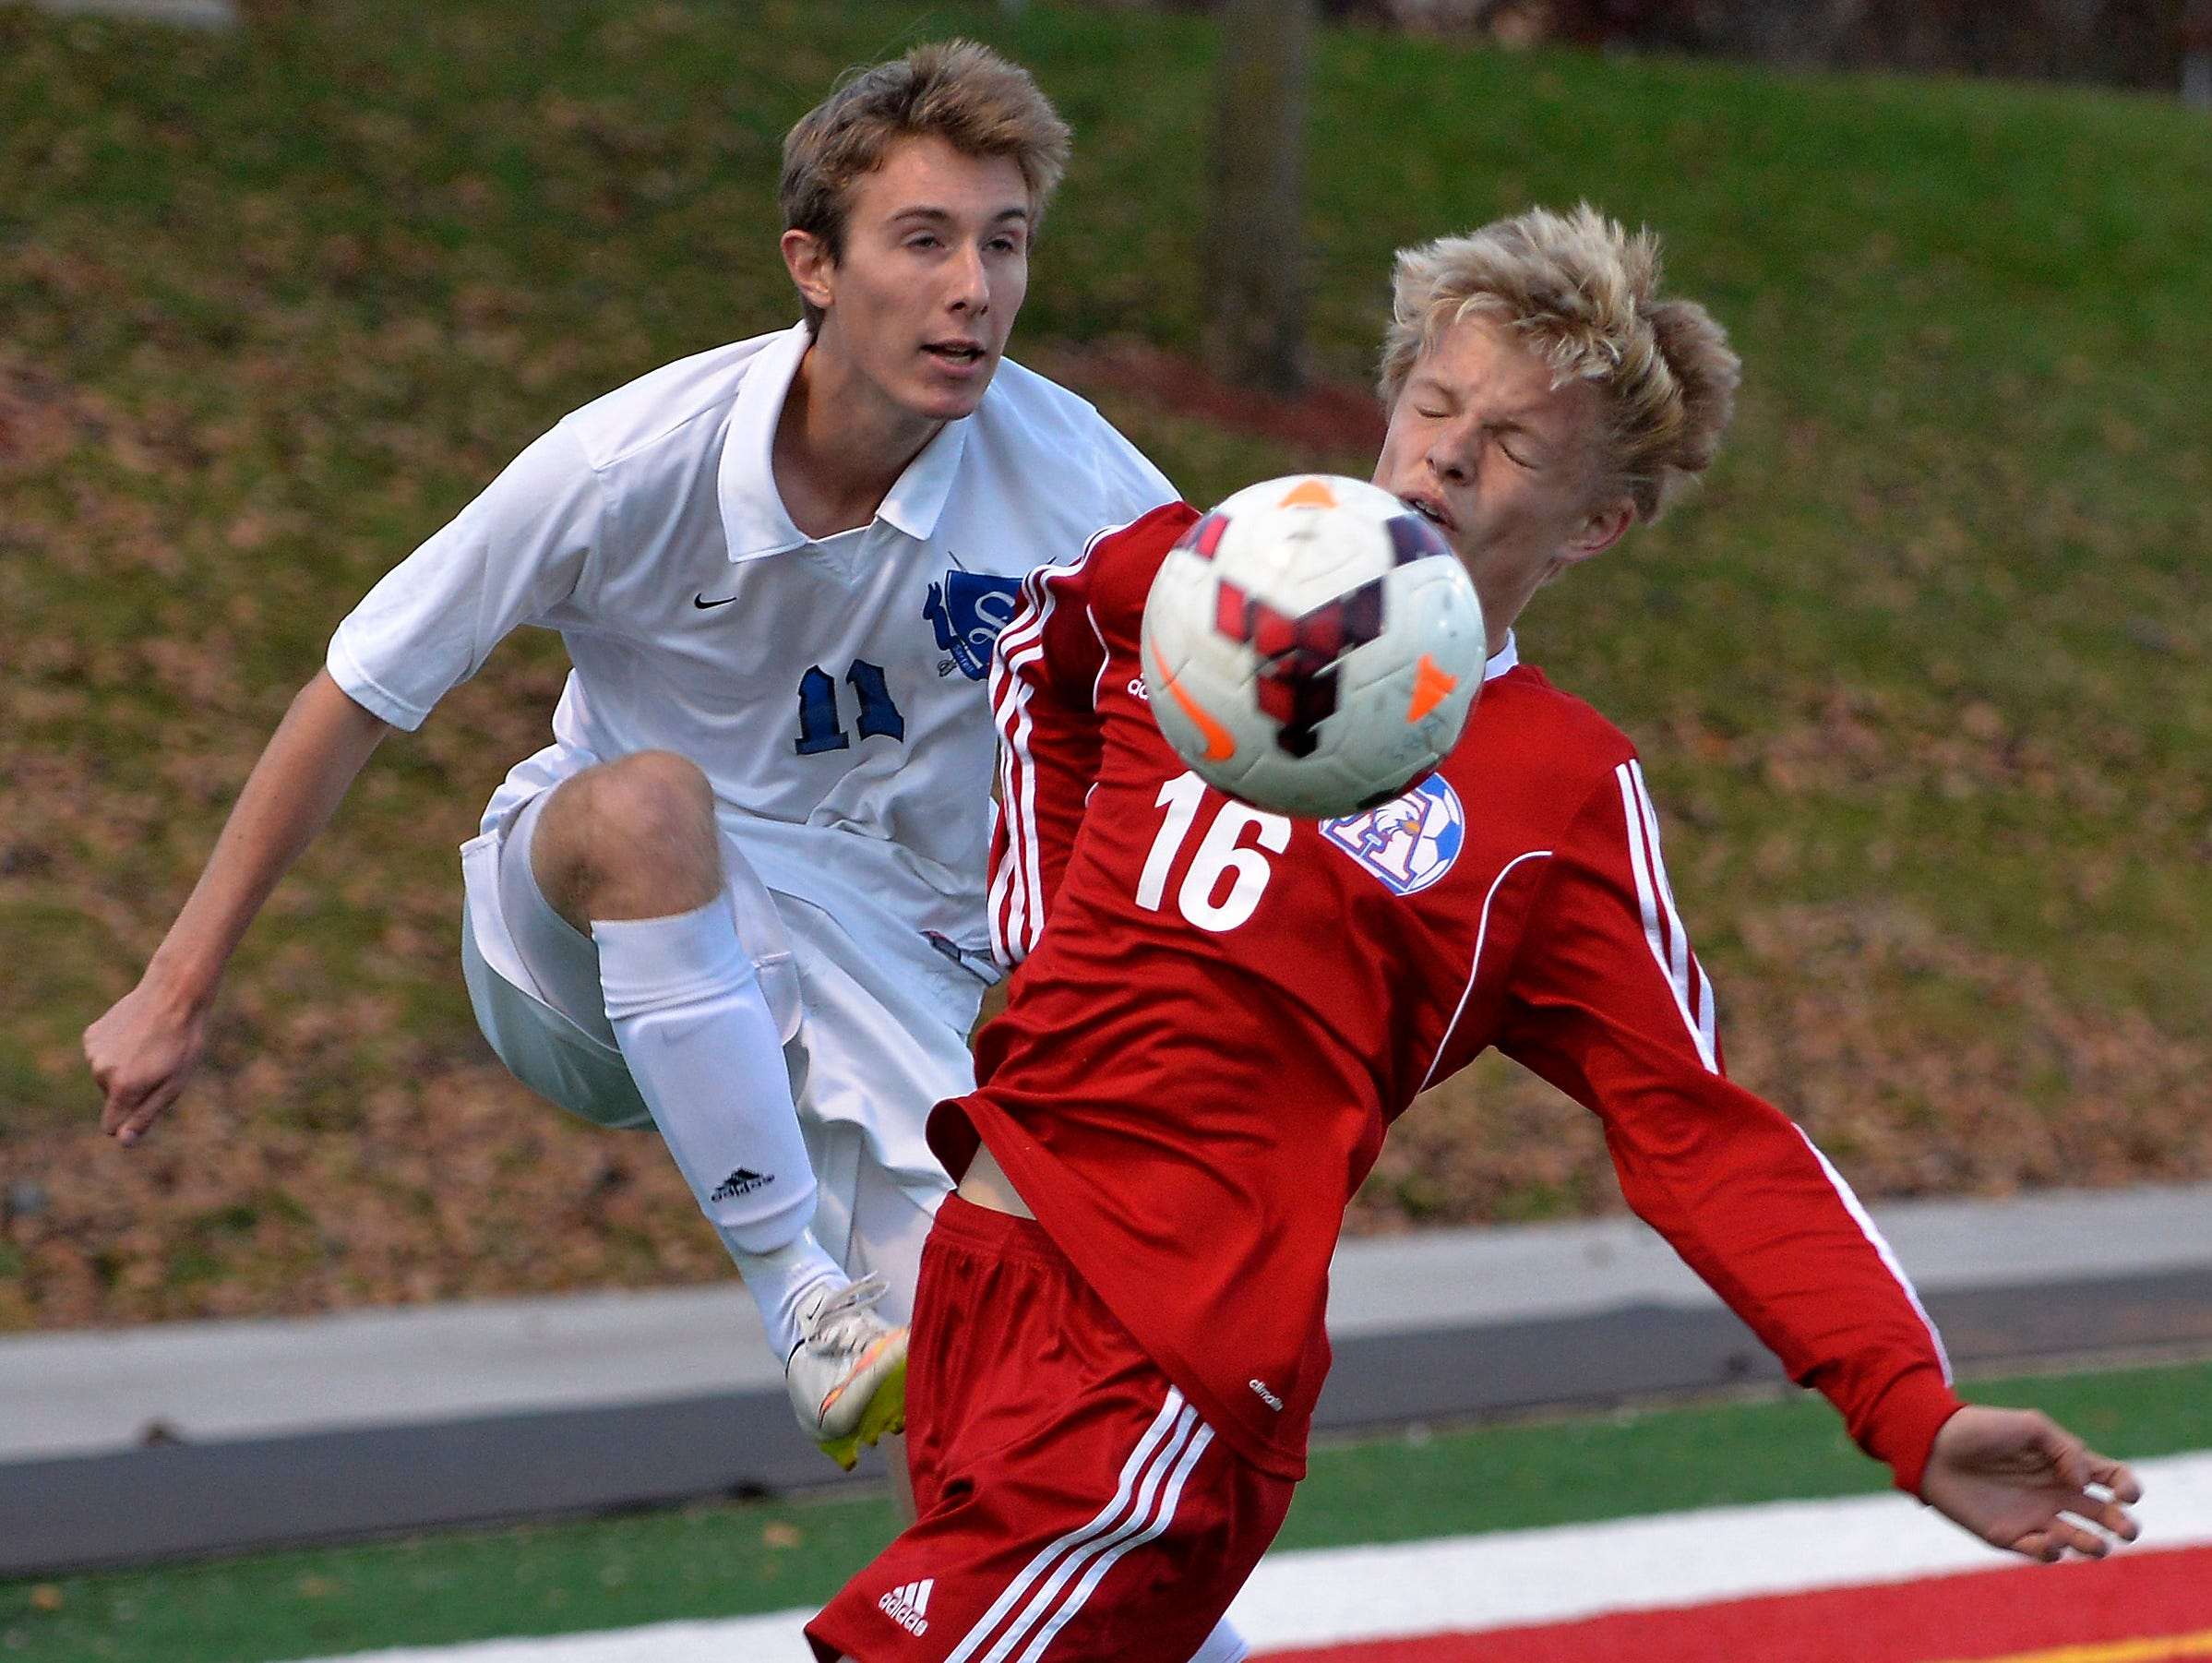 Sartell's Riley Sanderson (11) kicks the ball into the face of St. Cloud Apollo's Logan Lommel (16) in the first half of their Sect. 8A championship game Thursday, Oct. 22 at Husky Stadium.